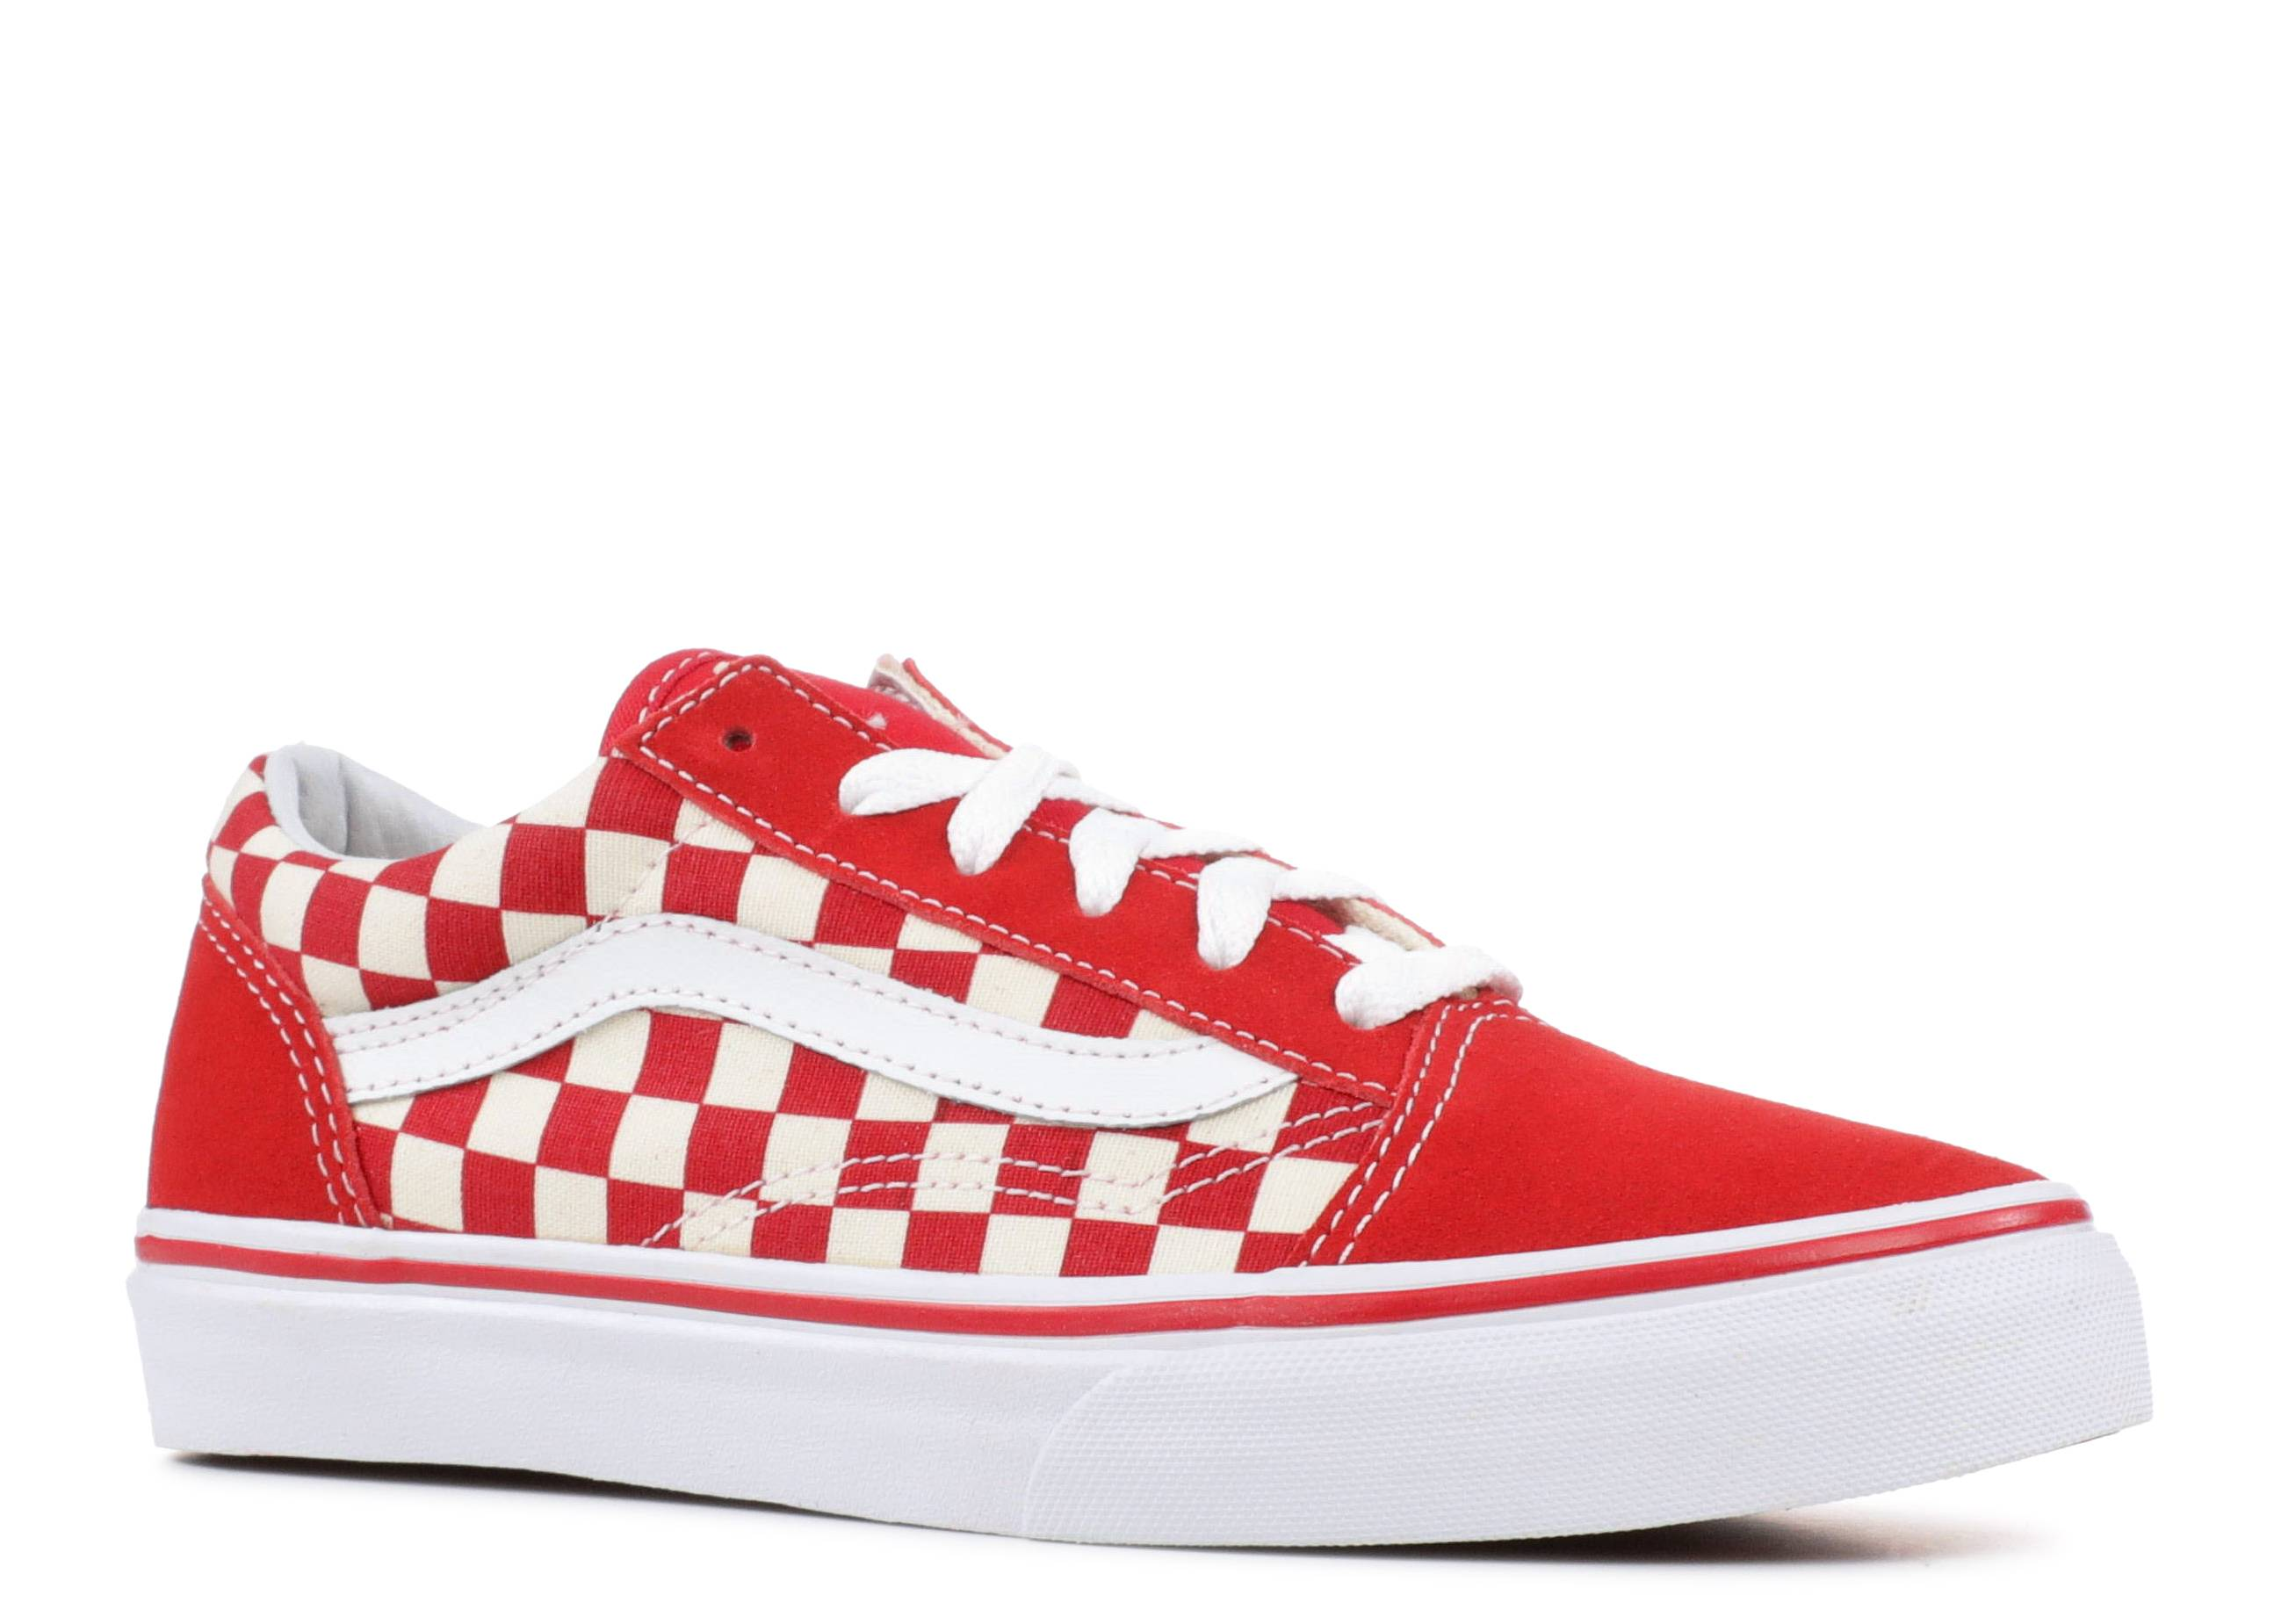 559815882846e6 OLD SKOOL PRIMAR - Vans - VN0A38HBP0T - primary check rng rd w ...